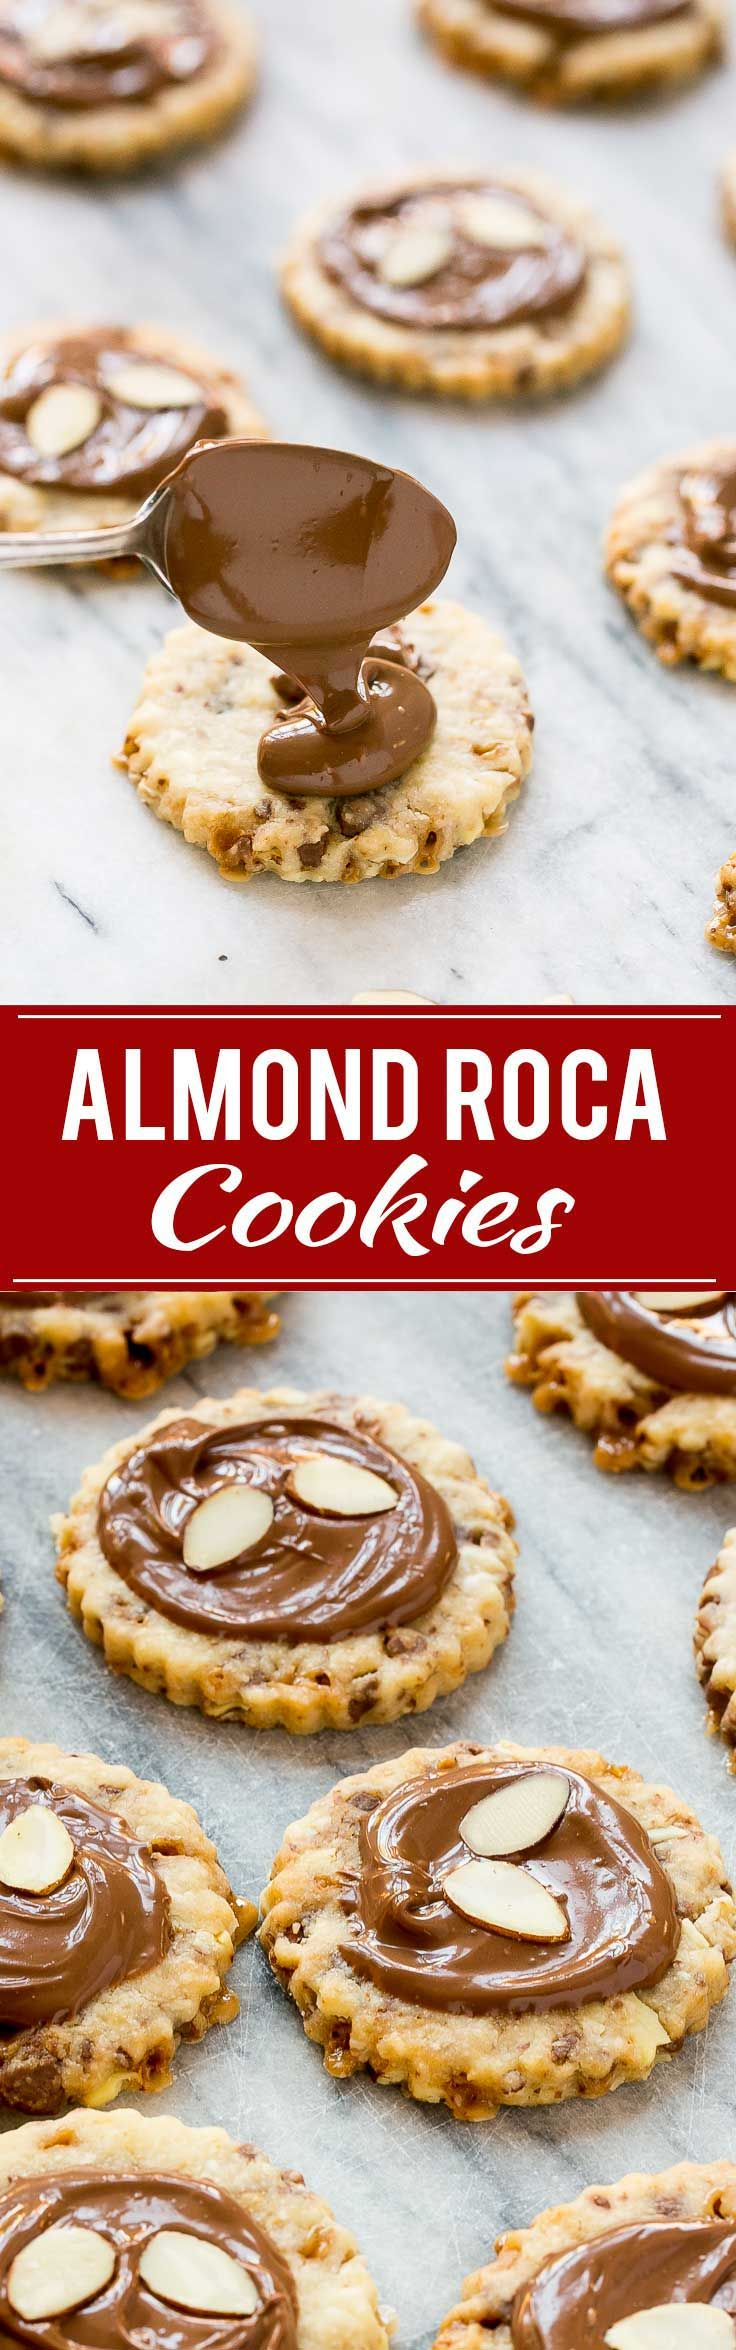 These almond roca cookies are loaded with toffee and almonds and topped with creamy milk chocolate. #BakeMagicMoments #Target ad